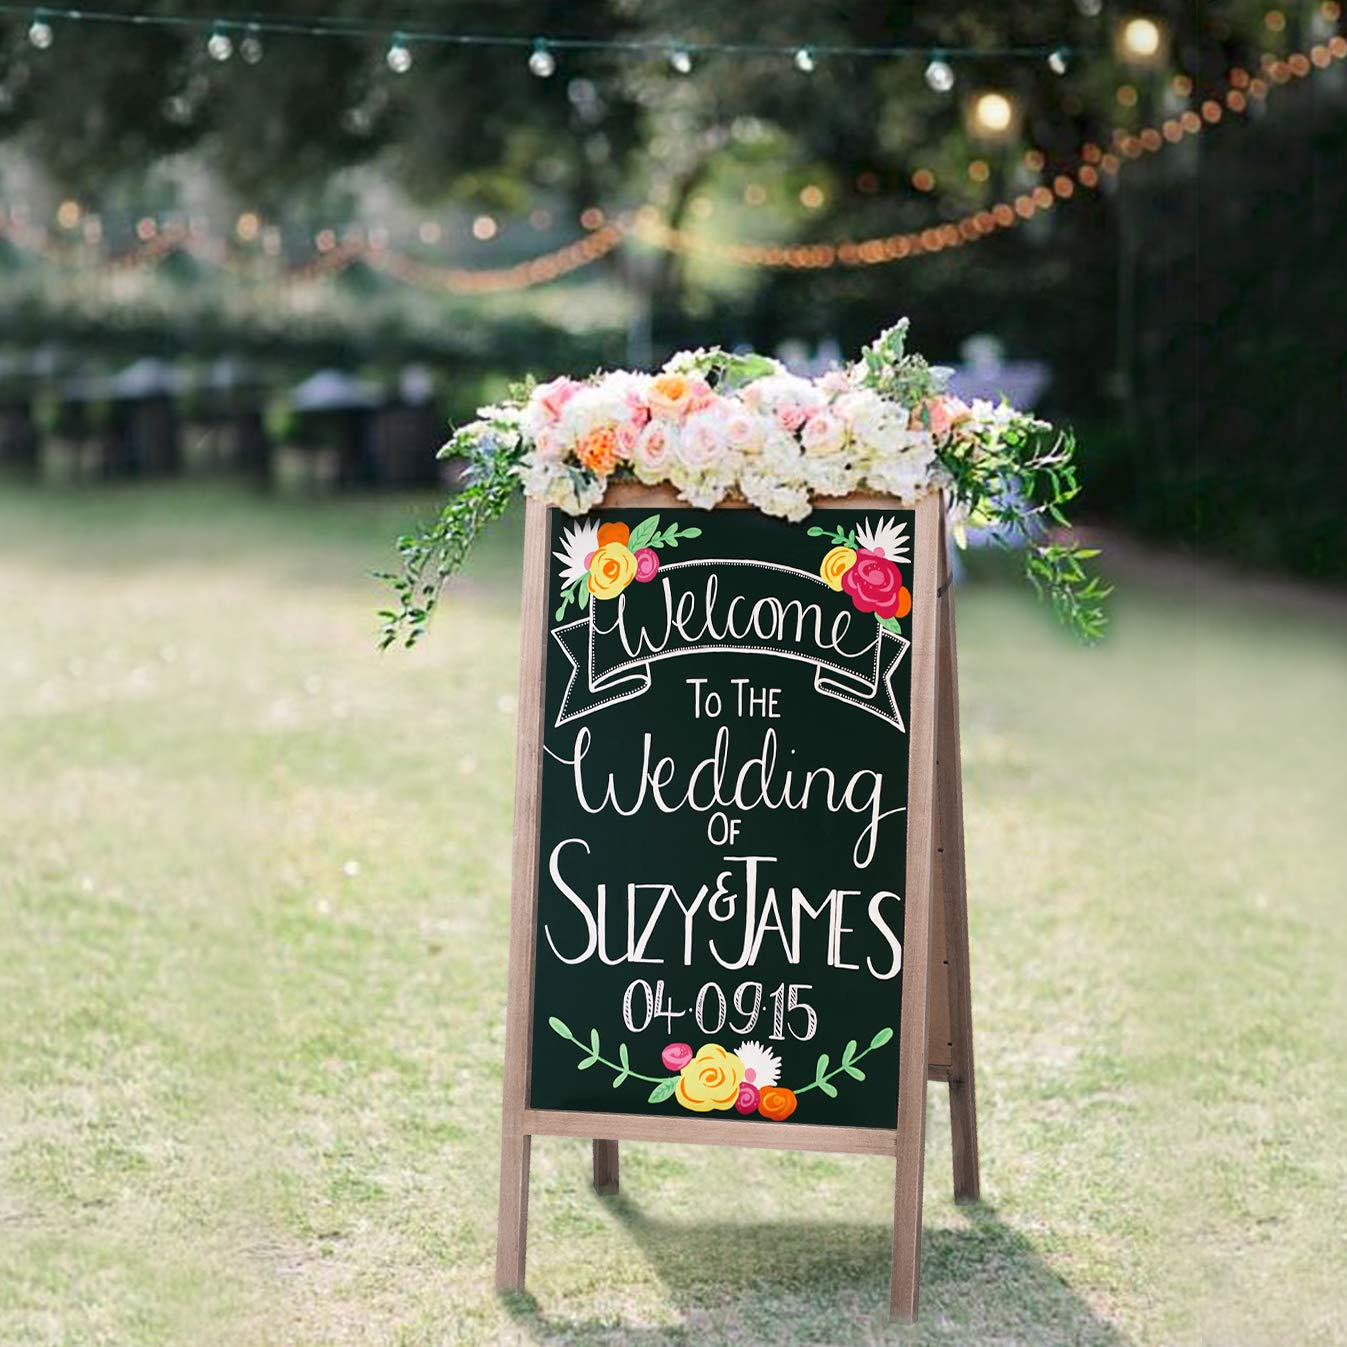 RHF Double Sided Chalk Board Sign,Sidewalk Sign,Sandwich Chalkboards,Rustic Freestanding A-Frame Wedding Decoration,Non-Porous Message, Chalkboard ...